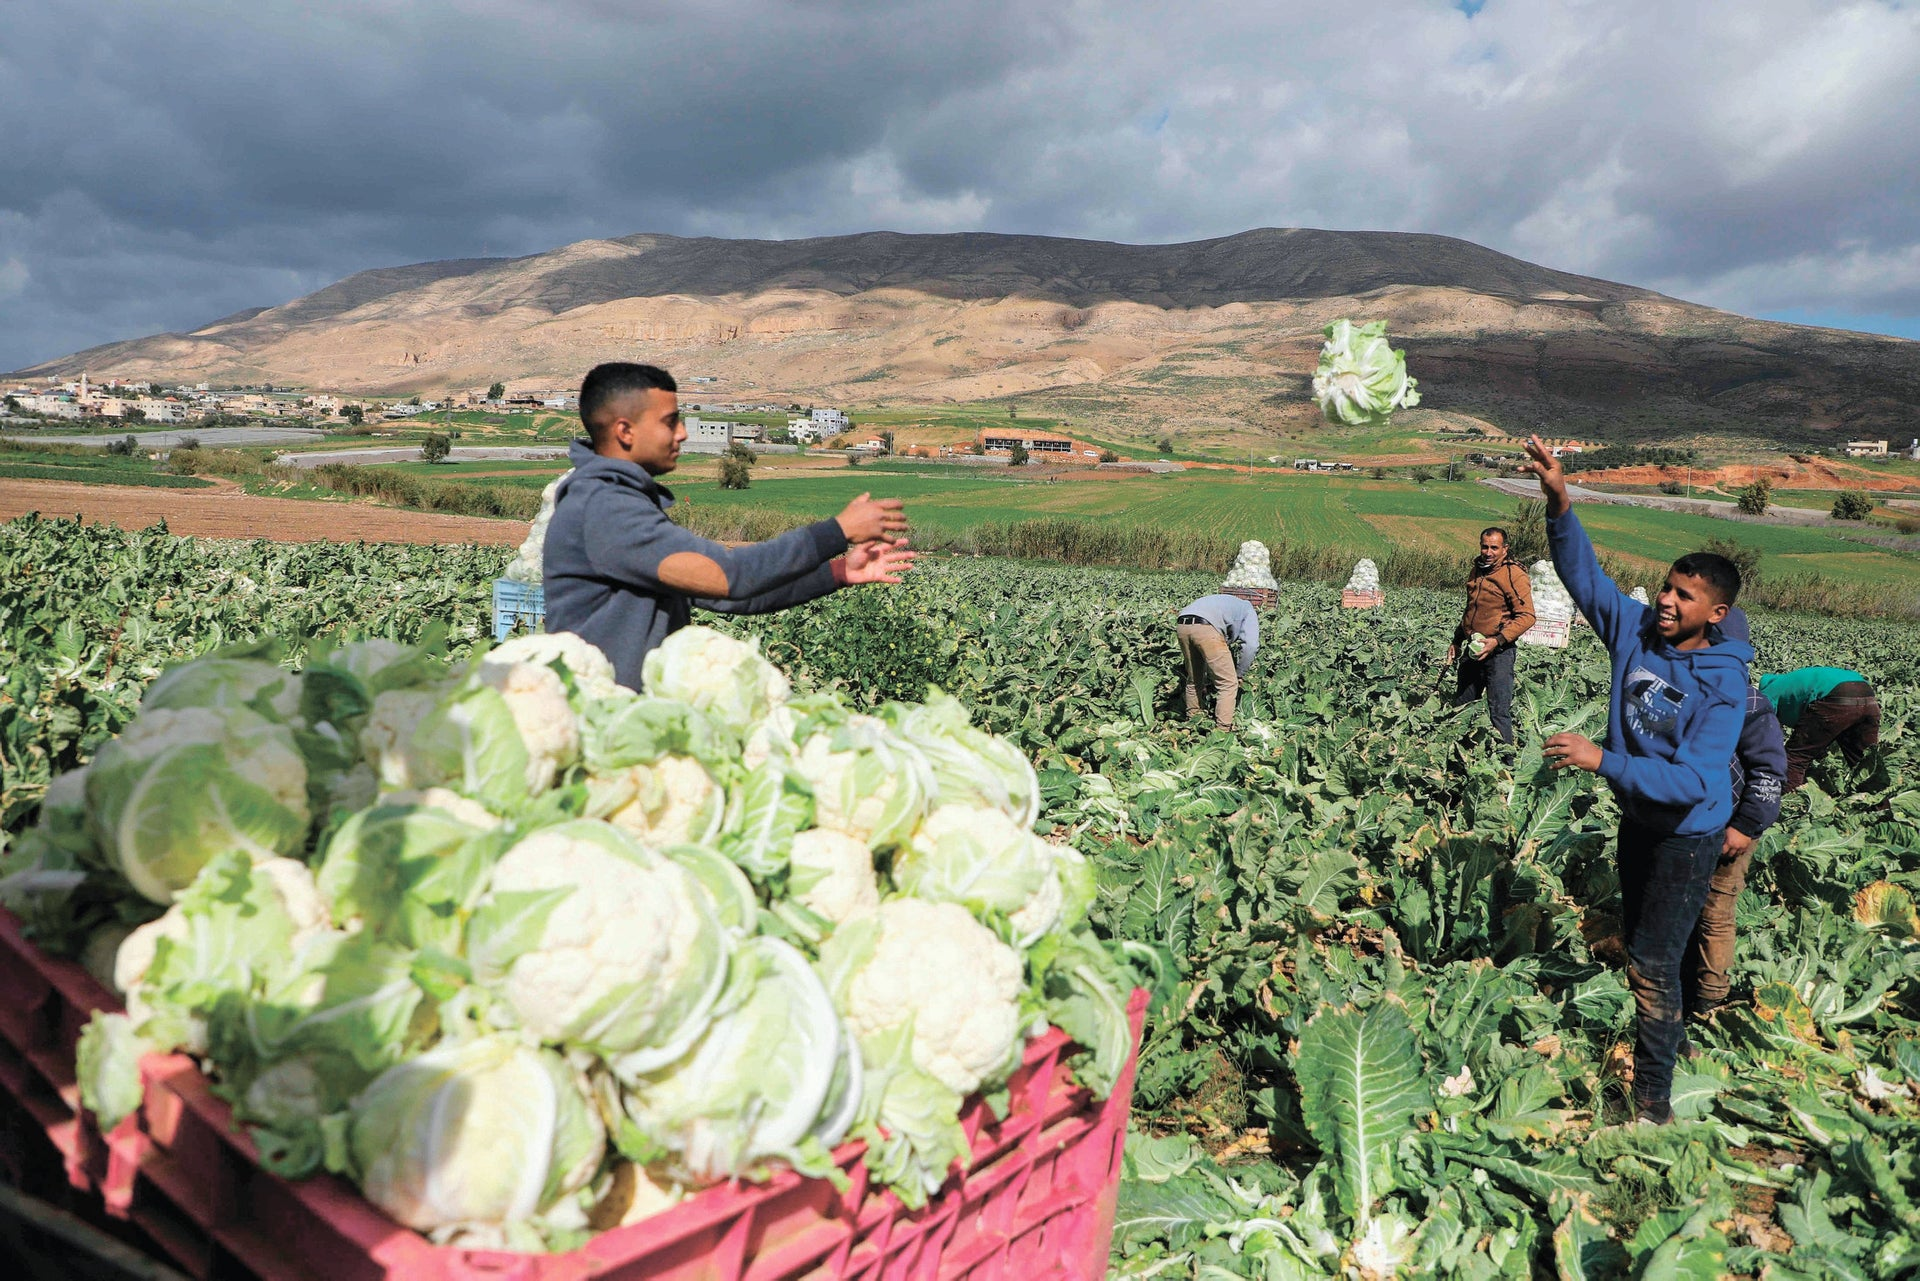 Palestinian farmers harvest cauliflower at a field in the Jordan Valley in the Israeli-occupied West Bank on February 1, 2020.